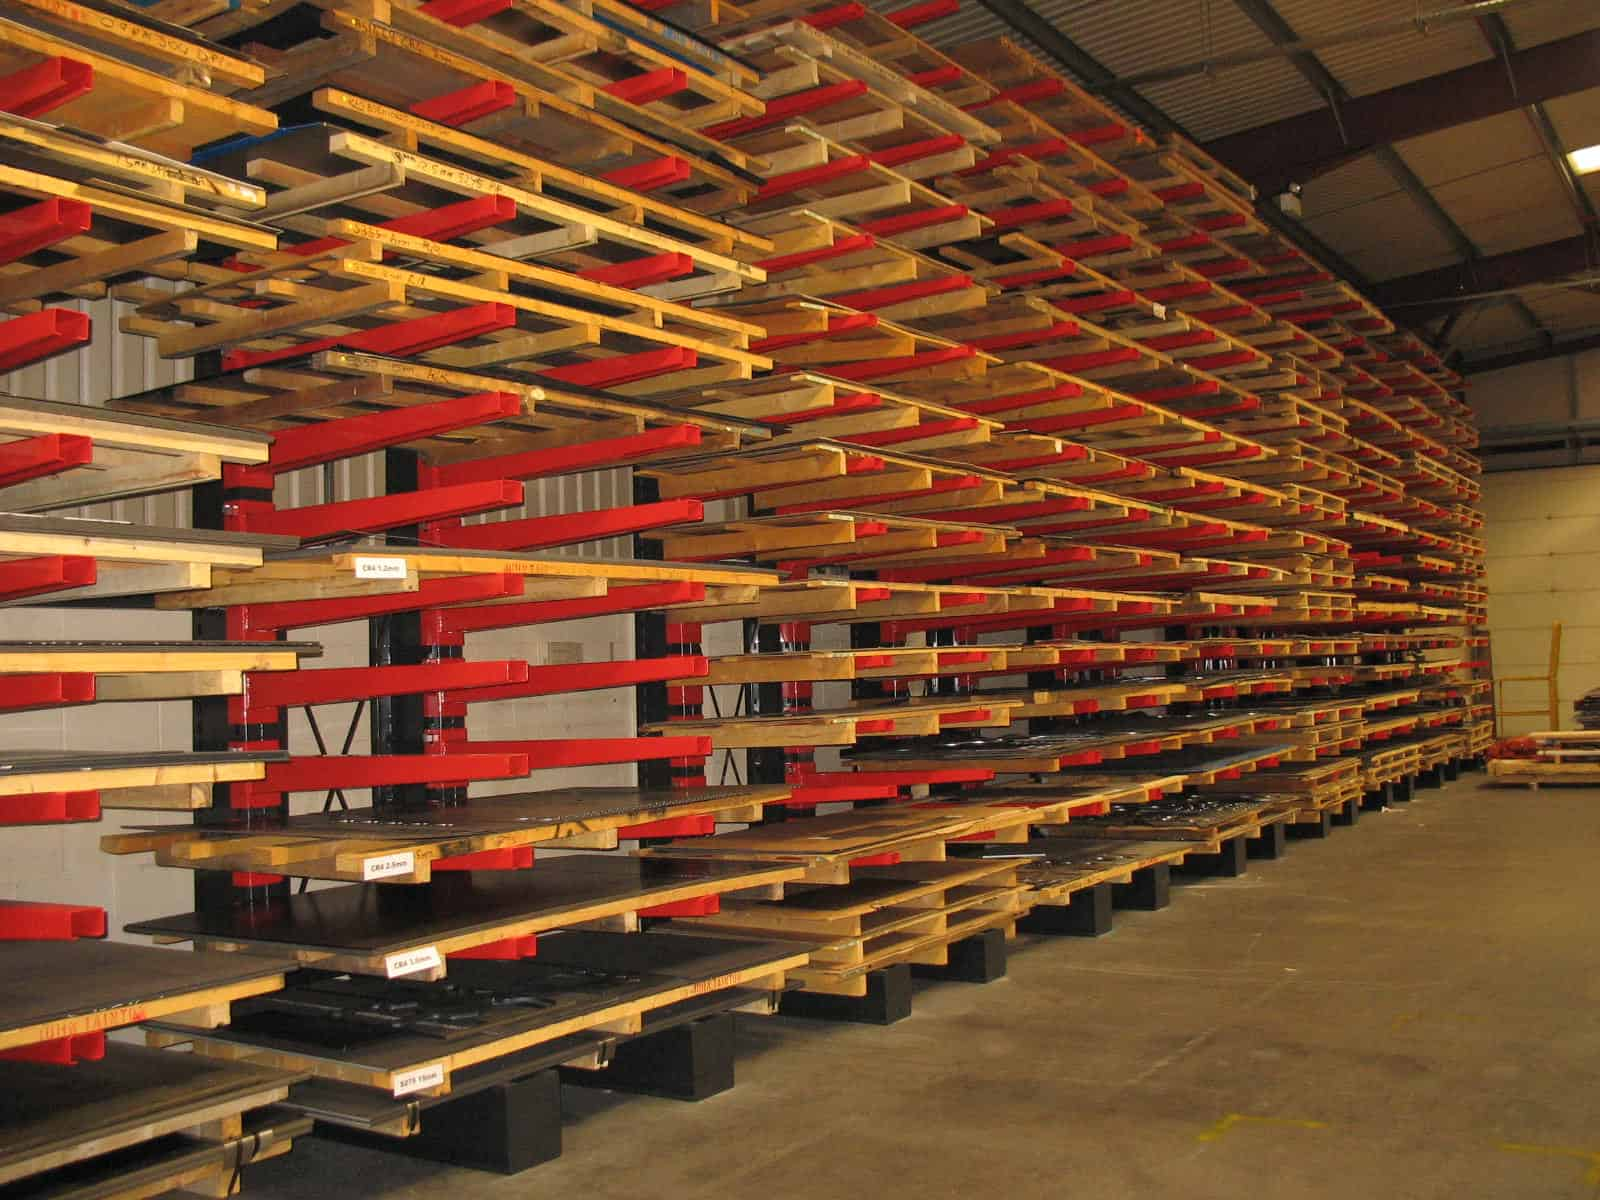 Stakapal Cantilever Racking for Storage of Heavy Duty Metal Sheet Materials